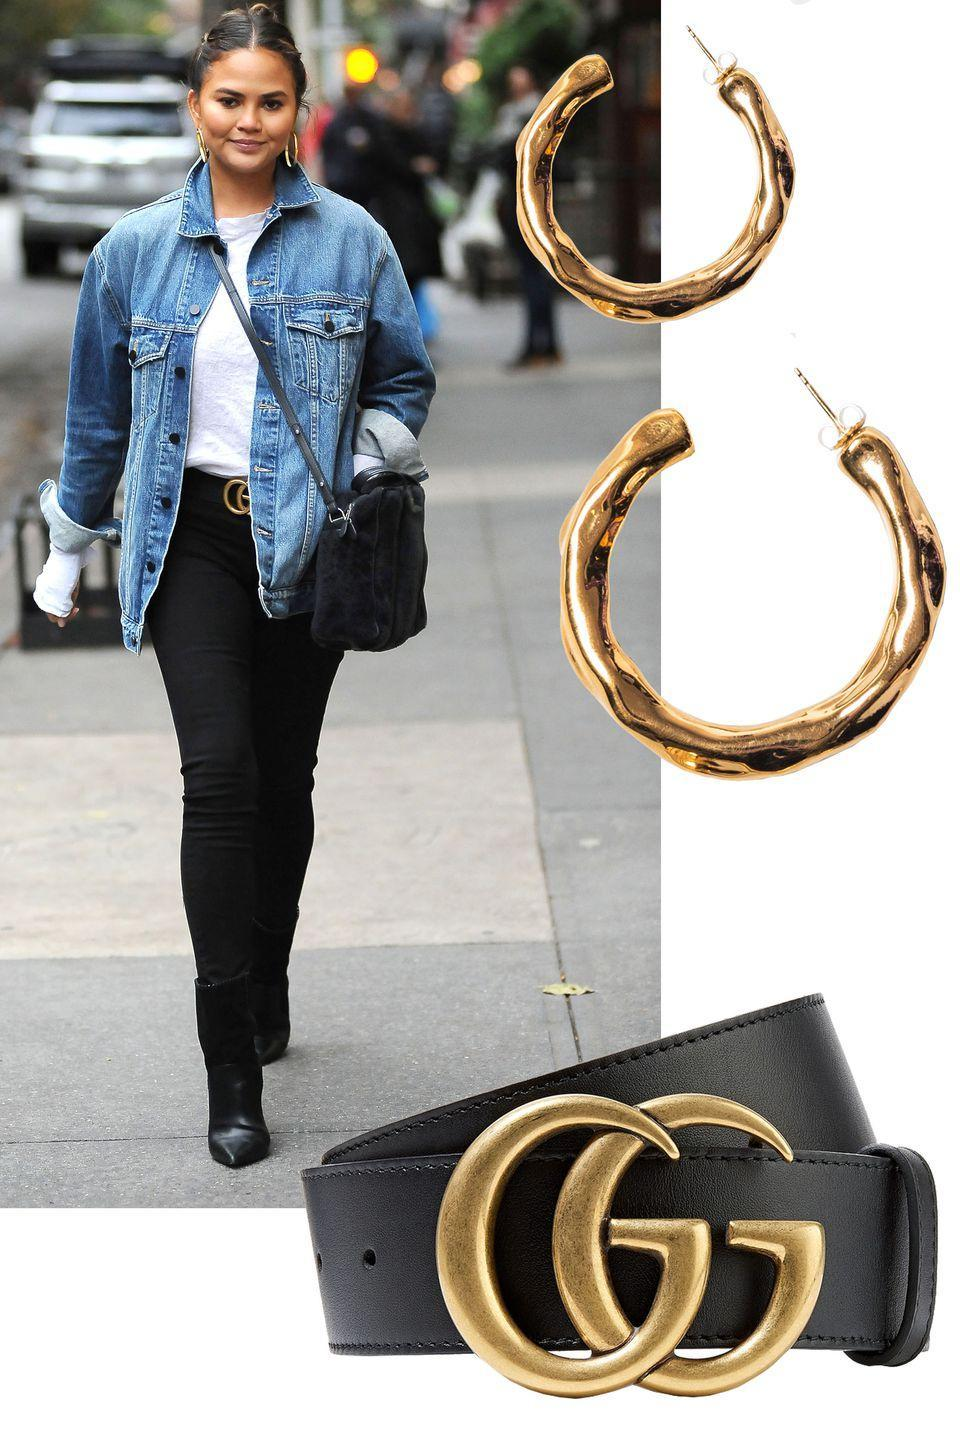 """<p>Make your denim stand out with accents of gold in the form of eye-catching accessories from gold hoops to logo belts à la Chrissy Teigen.</p><p><em>The M Jewelers NY hoops, $65, <a href=""""https://www.revolve.com/r/DisplayProduct.jsp?aliasURL=the-m-jewelers-ny-bamboo-hoop-earrings-in-gold%2Fdp%2FTSNR-WL24&d=F&countrycode=US&gclid=CjwKCAjwm-fkBRBBEiwA966fZJVI5NotUtkKEJaYE1HSz18EqGEPP-H7tc1xSCmjexORyvlDiehZkRoCKX4QAvD_BwE&product=TSNR-WL24"""" rel=""""nofollow noopener"""" target=""""_blank"""" data-ylk=""""slk:revolve.com"""" class=""""link rapid-noclick-resp"""">revolve.com</a>.</em></p><p><a class=""""link rapid-noclick-resp"""" href=""""https://www.revolve.com/r/DisplayProduct.jsp?aliasURL=the-m-jewelers-ny-bamboo-hoop-earrings-in-gold%2Fdp%2FTSNR-WL24&d=F&countrycode=US&gclid=CjwKCAjwm-fkBRBBEiwA966fZJVI5NotUtkKEJaYE1HSz18EqGEPP-H7tc1xSCmjexORyvlDiehZkRoCKX4QAvD_BwE&product=TSNR-WL24"""" rel=""""nofollow noopener"""" target=""""_blank"""" data-ylk=""""slk:SHOP"""">SHOP</a><br></p><p><em>Gucci belt, $350, <a href=""""https://www.gucci.com/us/en/pr/women/womens-accessories/womens-belts/womens-casual/leather-belt-with-double-g-buckle-p-409417AP00T1000"""" rel=""""nofollow noopener"""" target=""""_blank"""" data-ylk=""""slk:gucci.com"""" class=""""link rapid-noclick-resp"""">gucci.com</a>.</em></p><p><a class=""""link rapid-noclick-resp"""" href=""""https://www.gucci.com/us/en/pr/women/womens-accessories/womens-belts/womens-casual/leather-belt-with-double-g-buckle-p-409417AP00T1000"""" rel=""""nofollow noopener"""" target=""""_blank"""" data-ylk=""""slk:SHOP"""">SHOP</a><br></p>"""